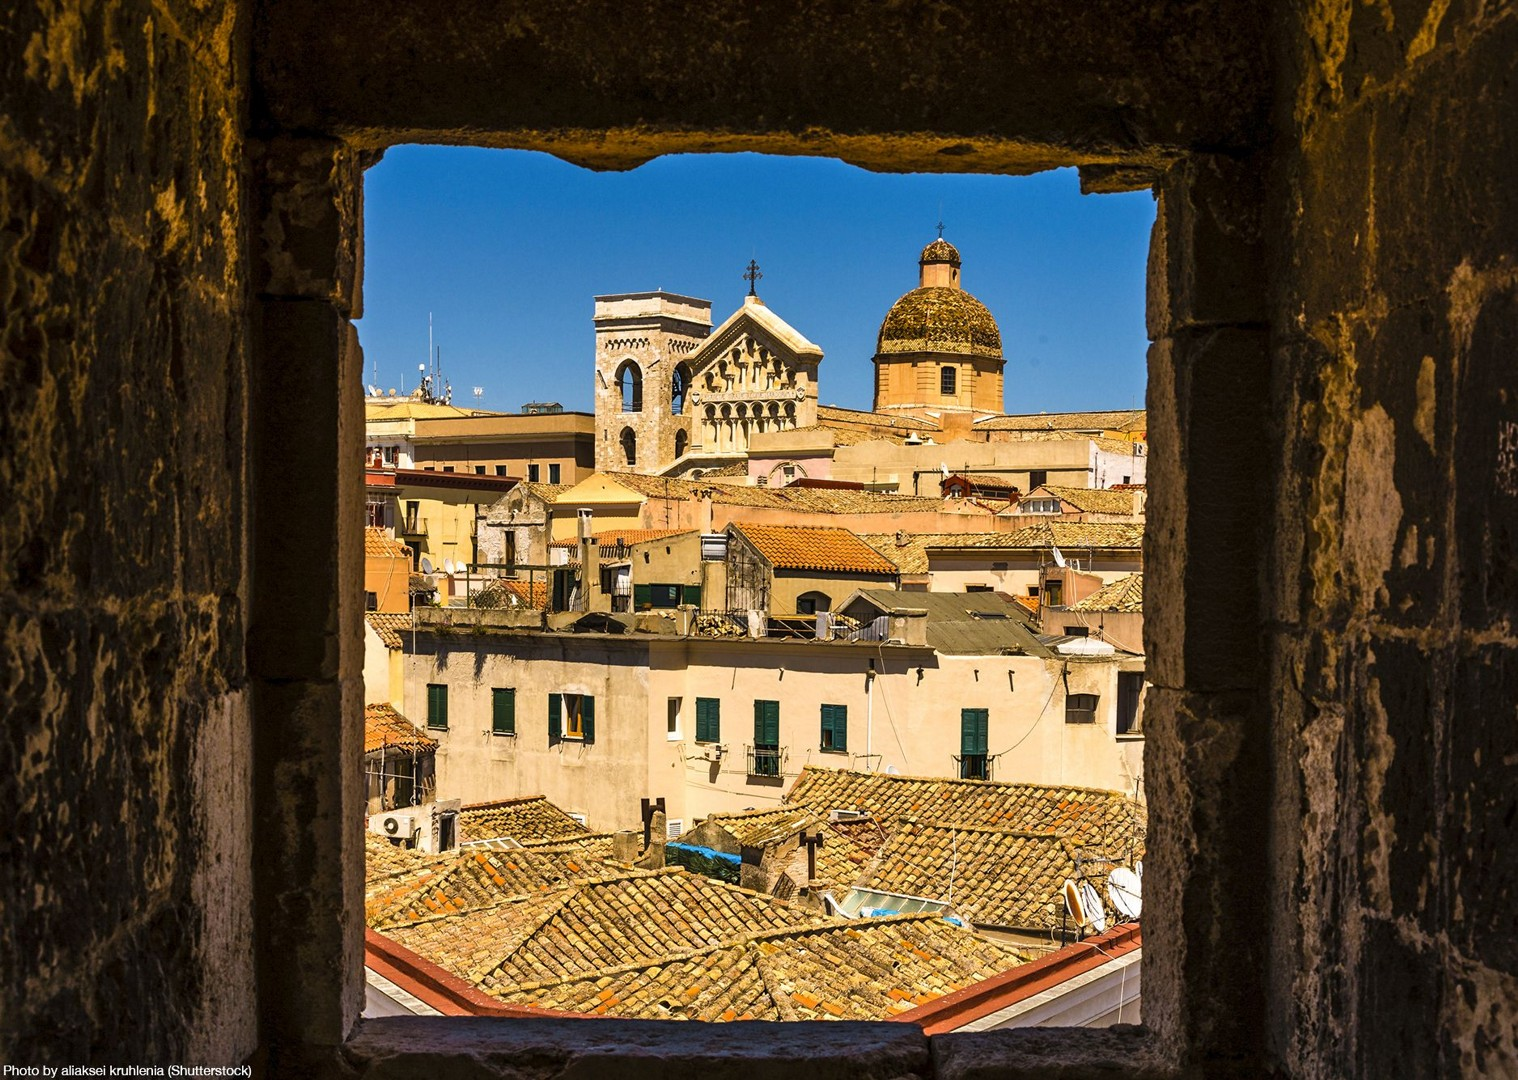 local-church-sardinia-west-coast-wonders-italy-bike-tour-experience.jpg - Italy - Sardinia - West Coast Wonders - Self-Guided Leisure Cycling Holiday - Leisure Cycling